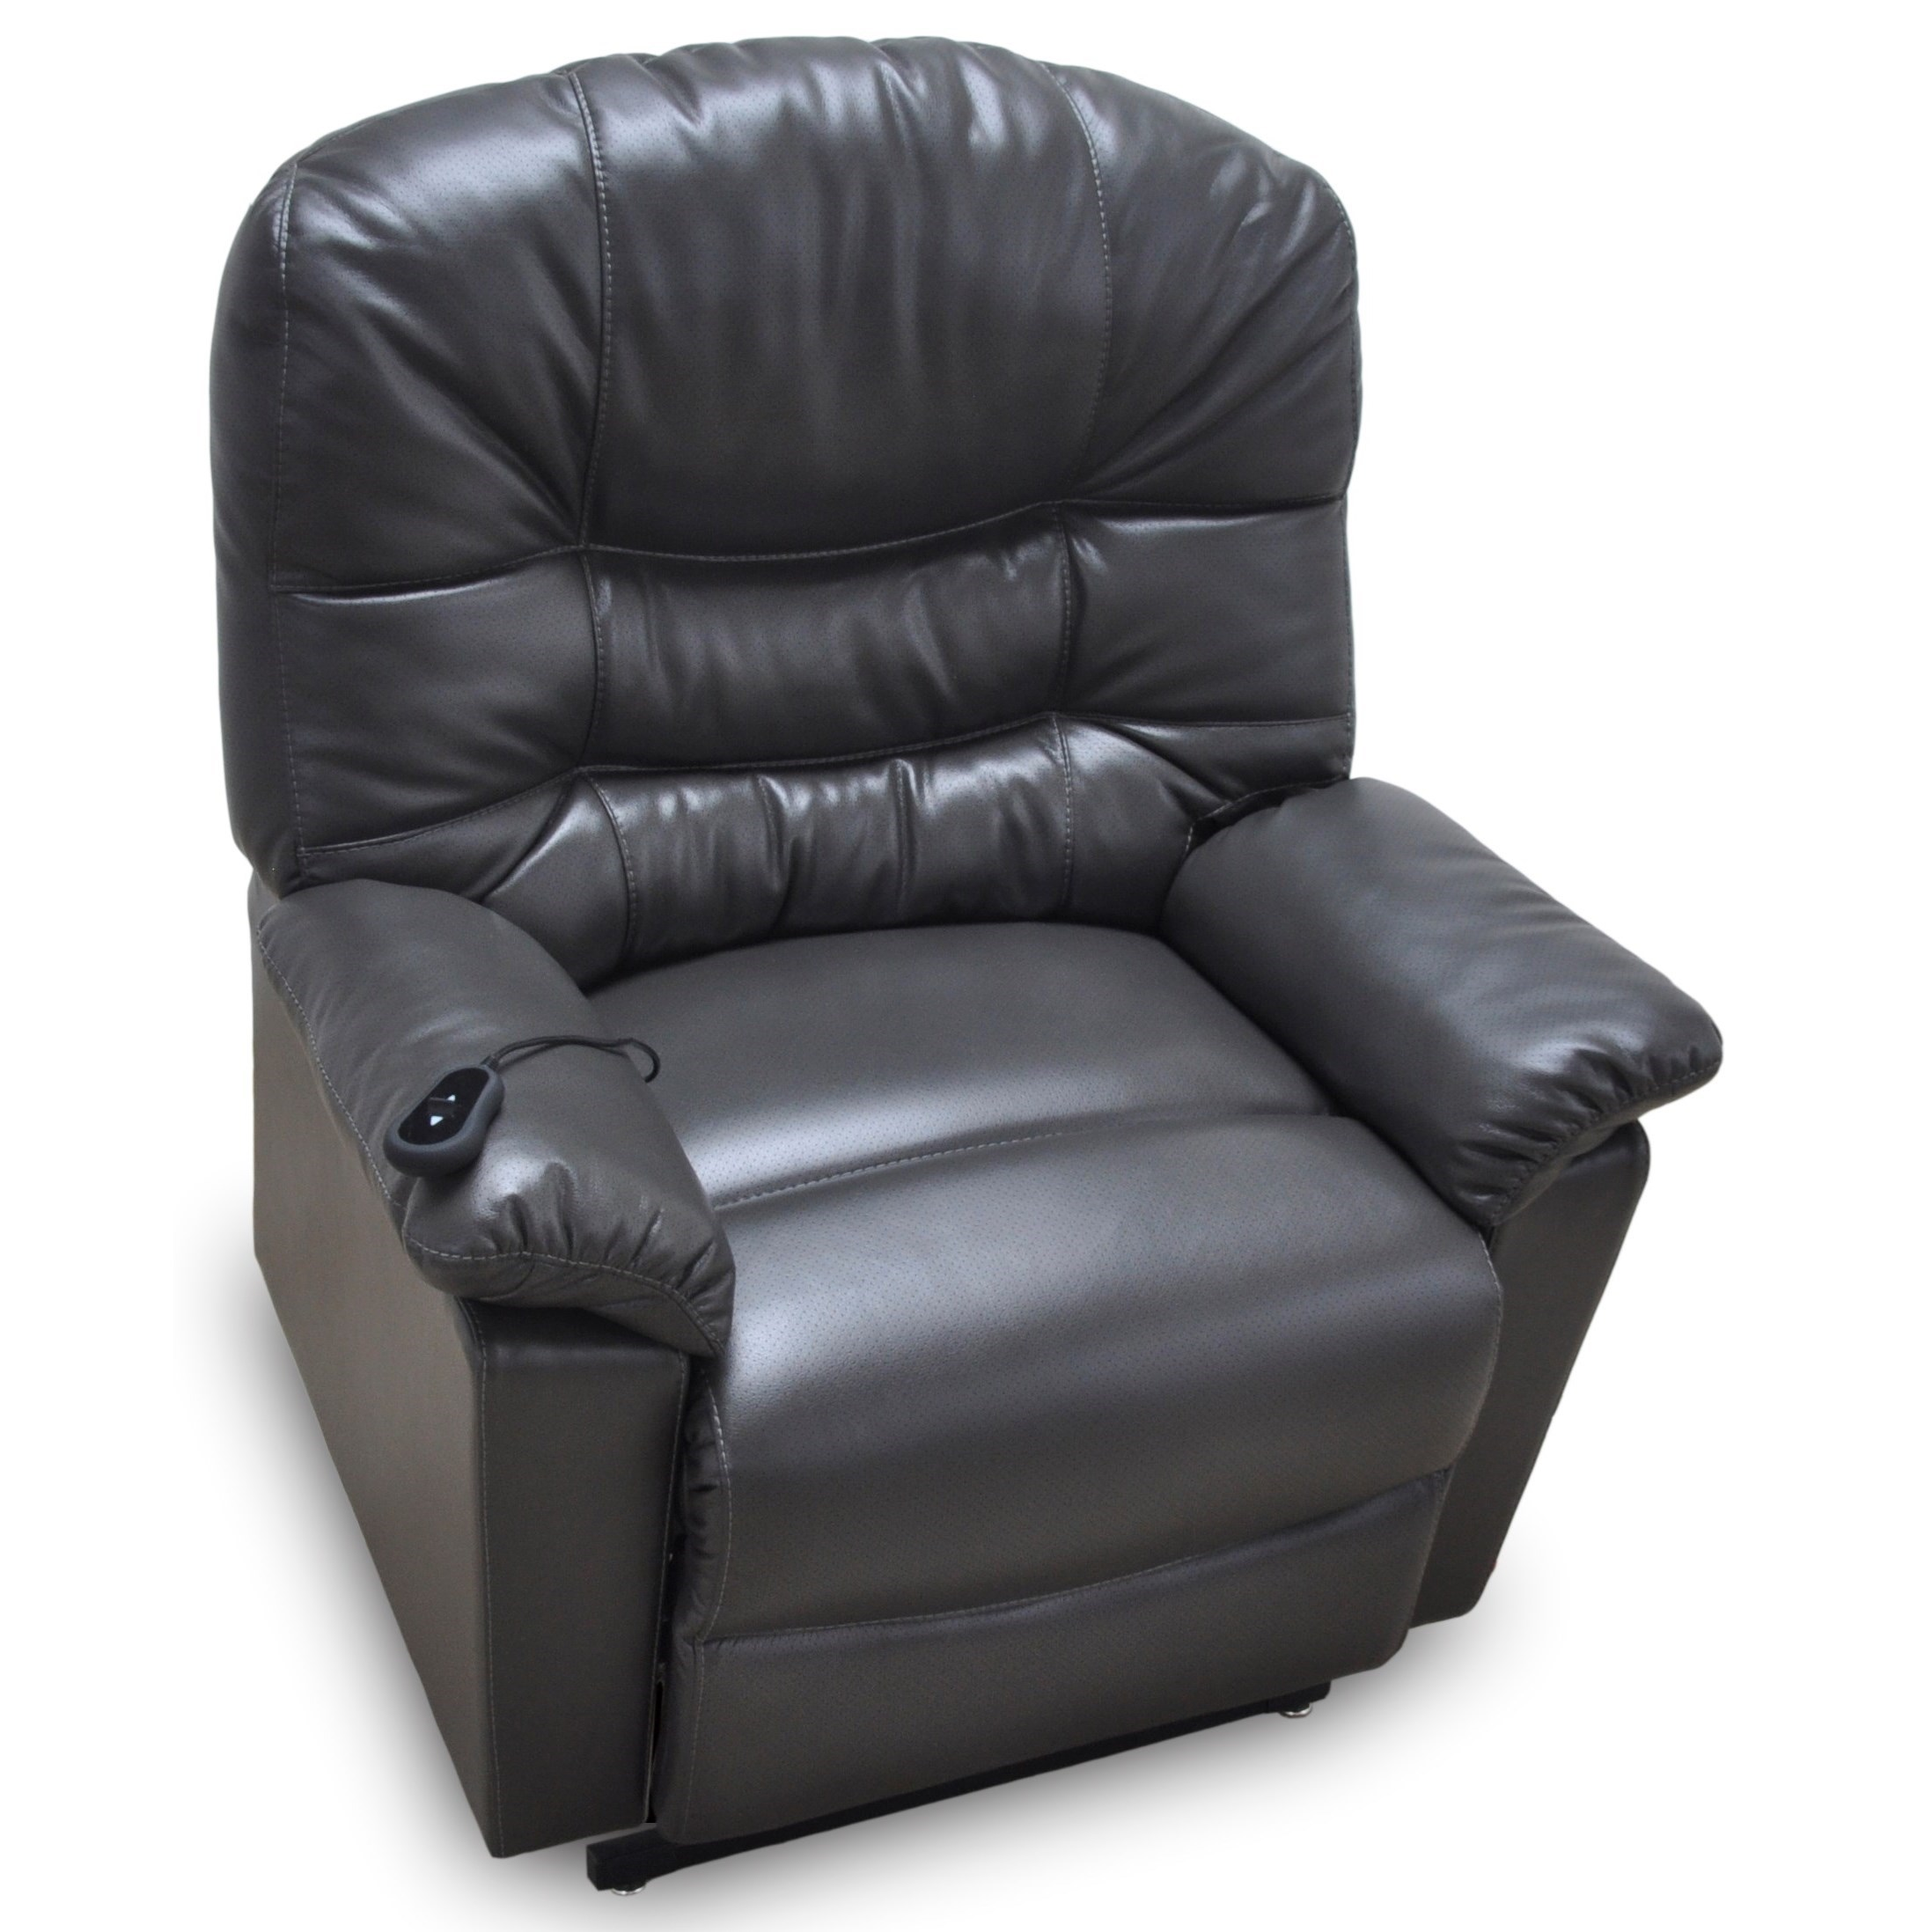 Franklin Recliners Power Lift Recliner by Franklin at Lagniappe Home Store